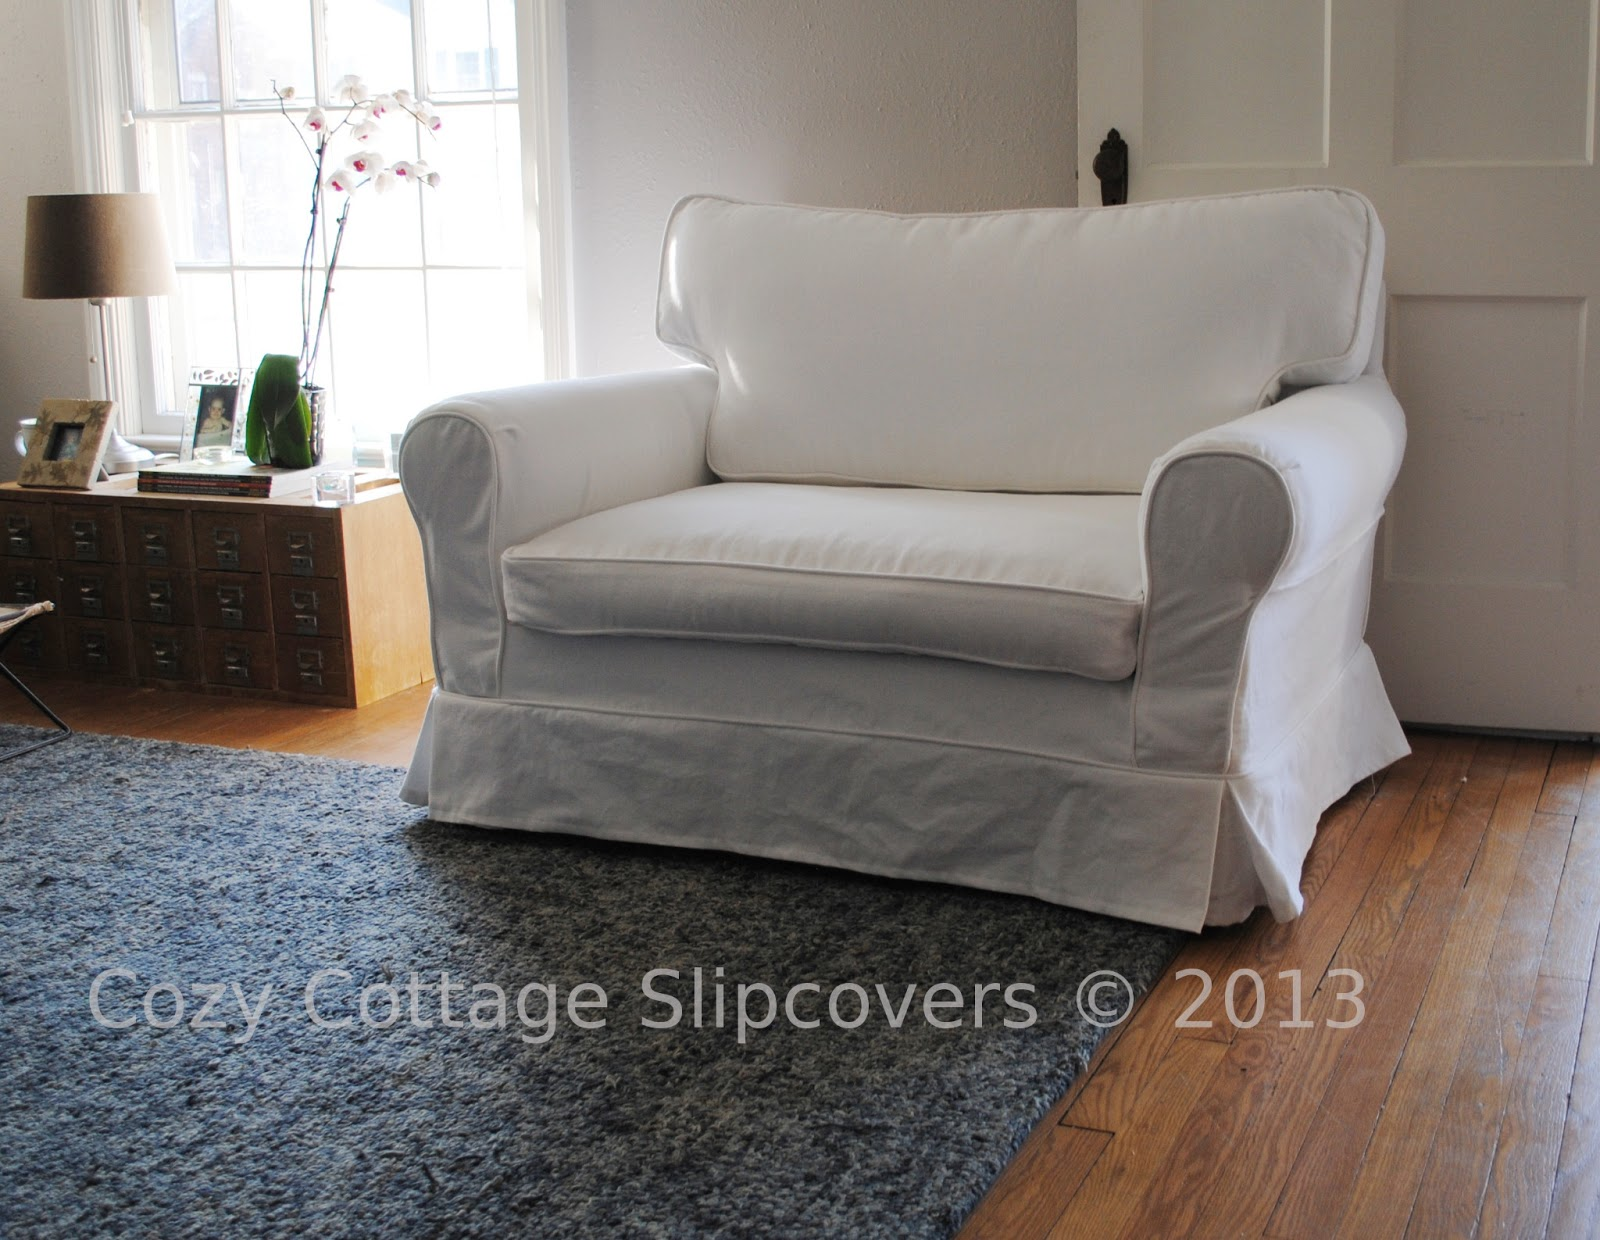 chair and a half cover folding foot caps cozy cottage slipcovers brushed canvas